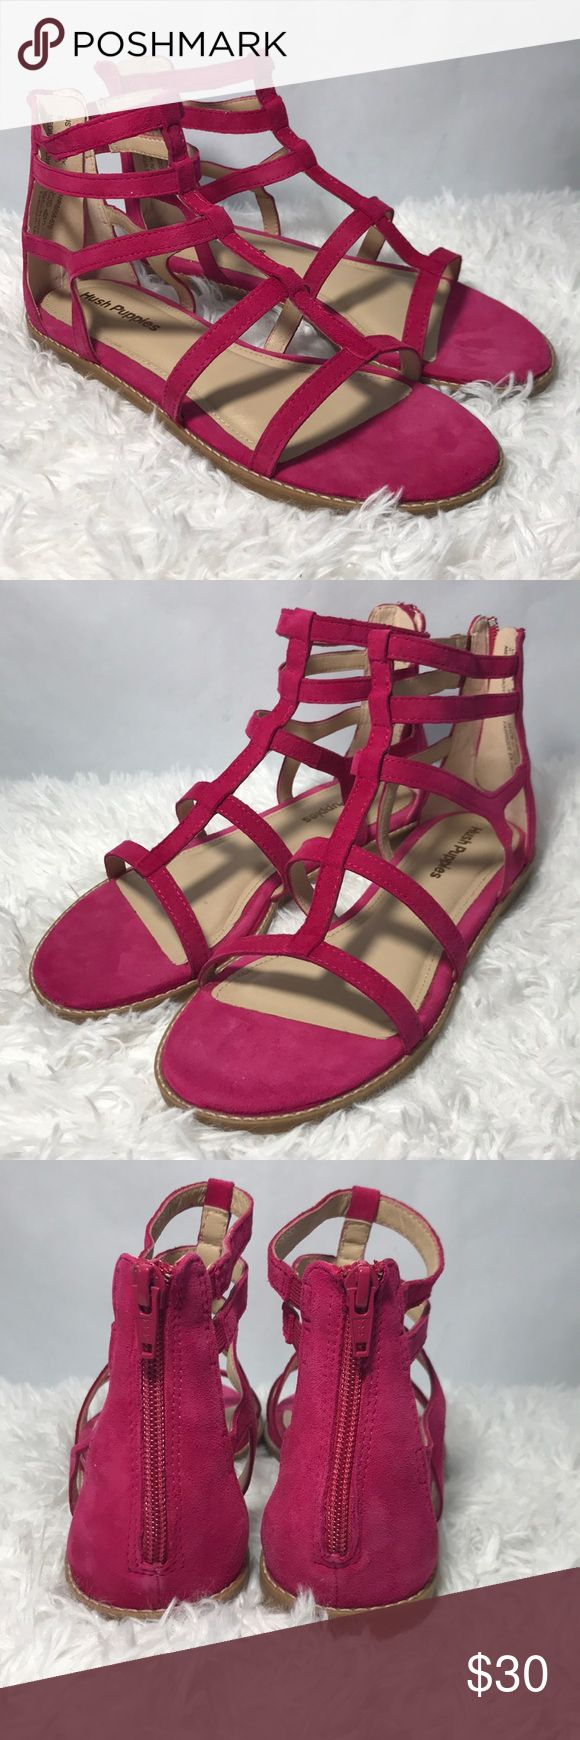 Hush Puppies Pink Strappy Sandals Persian Rose Suede Hush Puppies Sandals. New in box, only tried on, never actually worn. Size 8 Hush Puppies Shoes Sandals